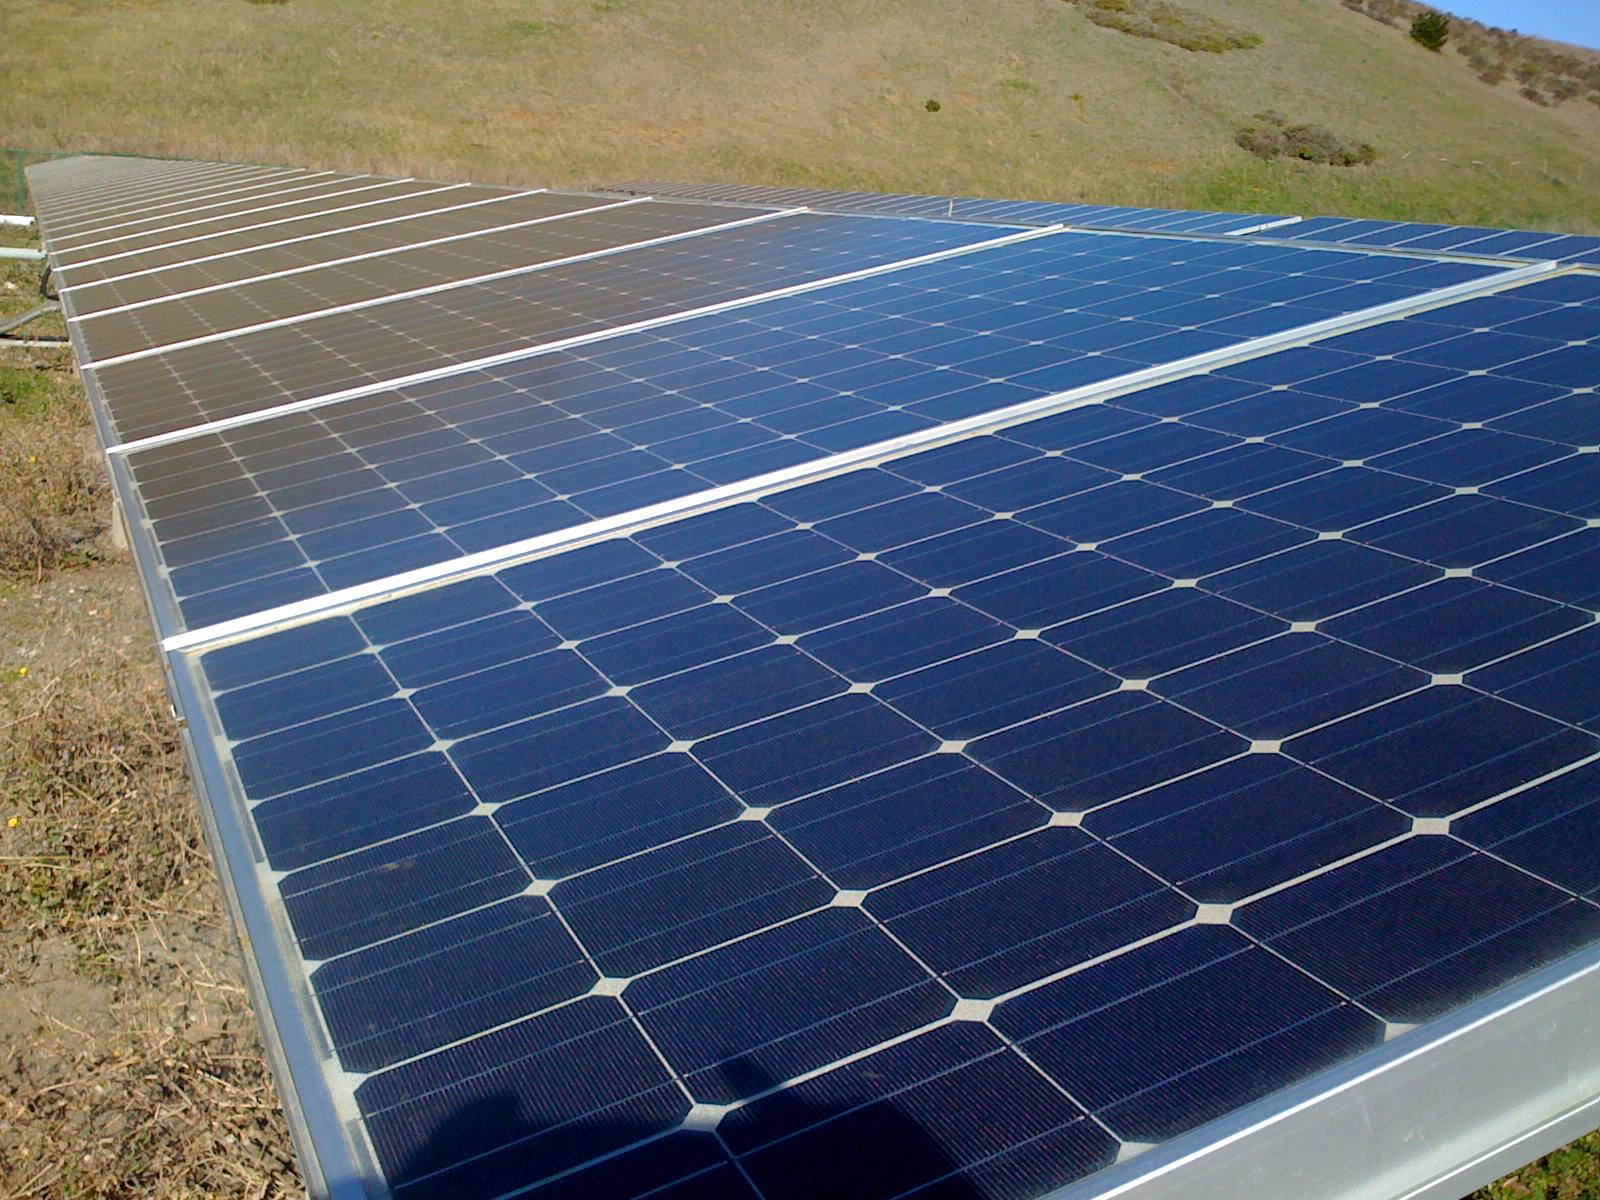 Stassen's appointment follows Sol Voltaics' record US$17 million series C funding round in May 2016. Image: Robert Scoble / Flickr